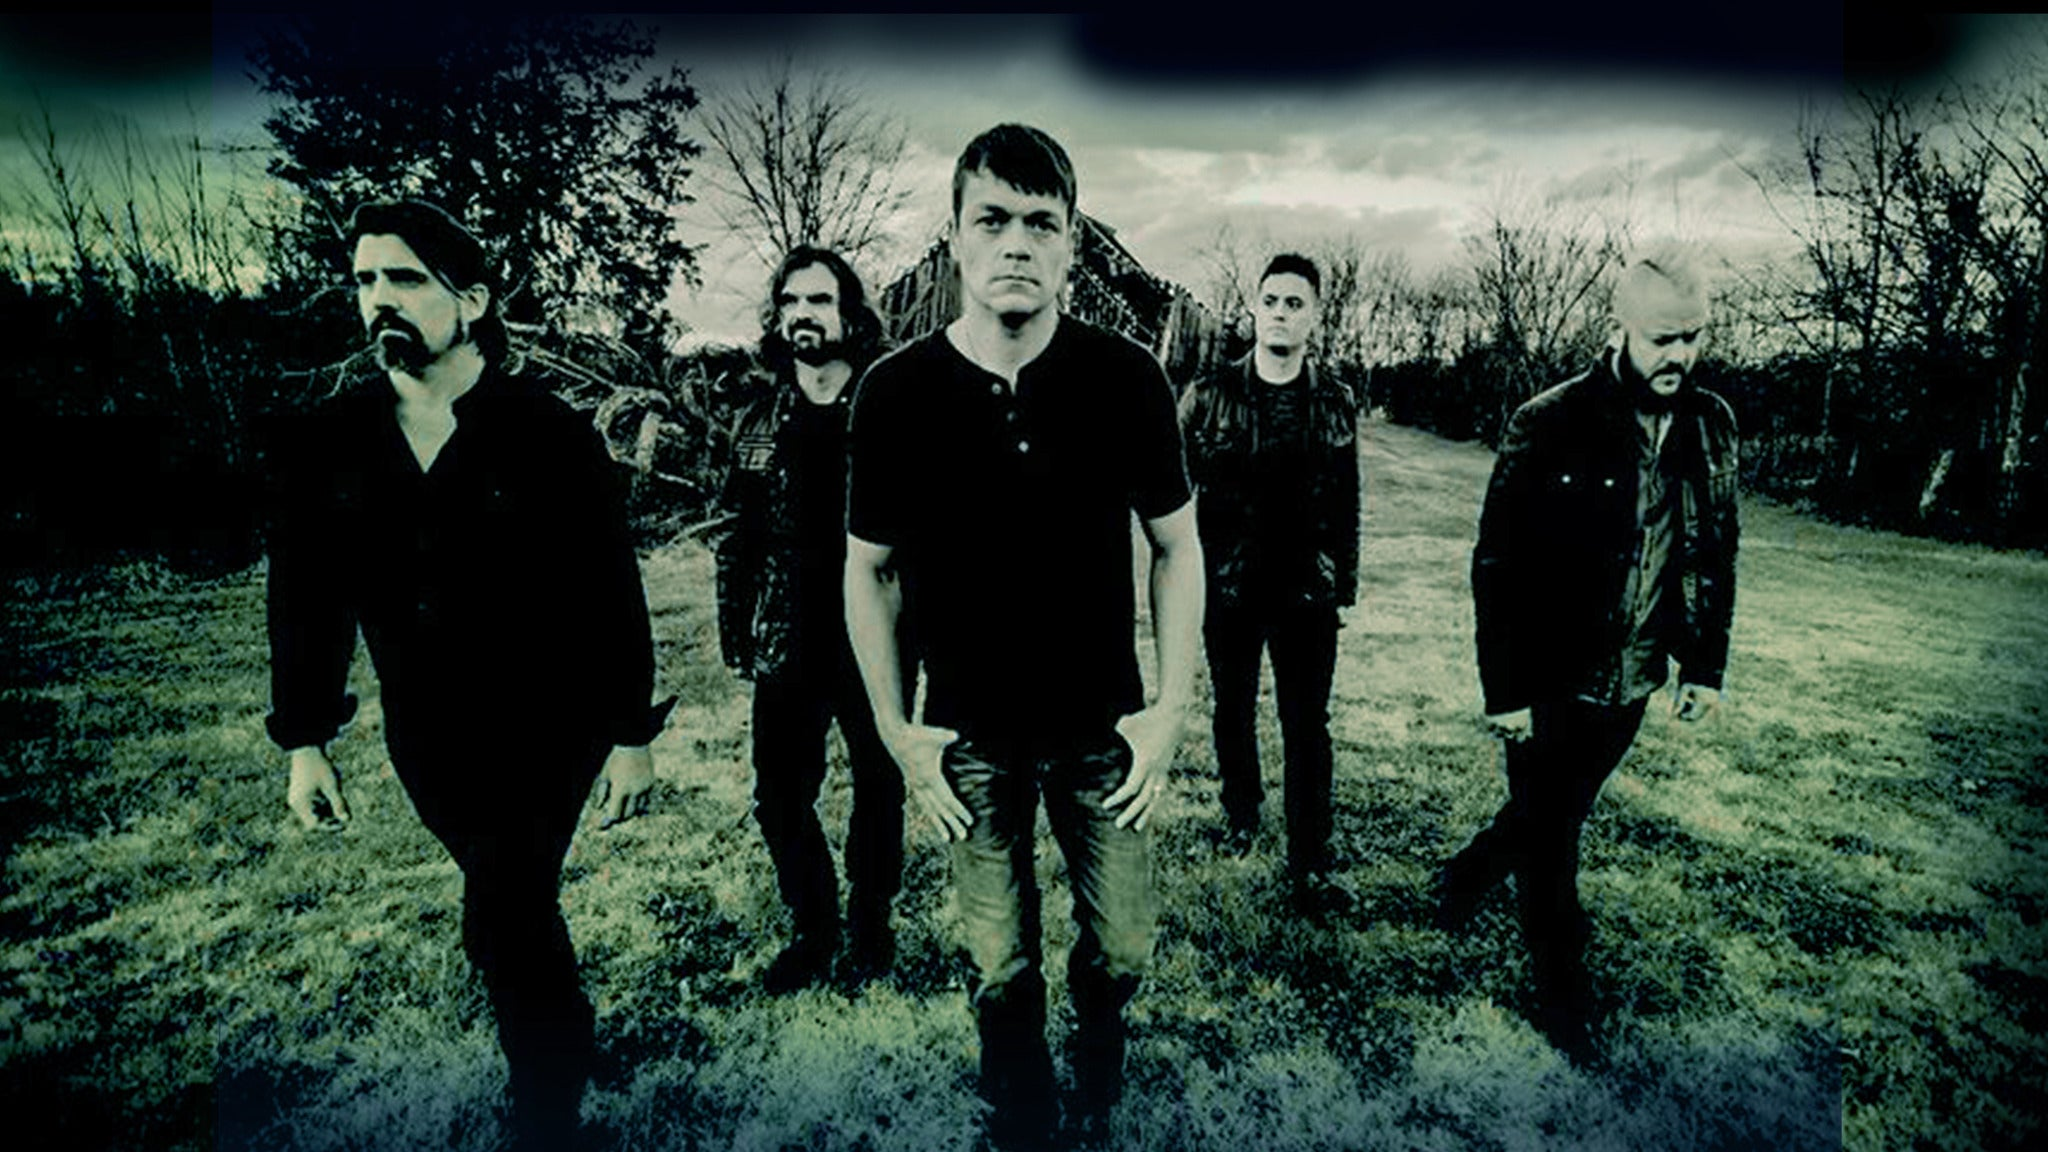 3 Doors Down at Gallo Center for the Arts